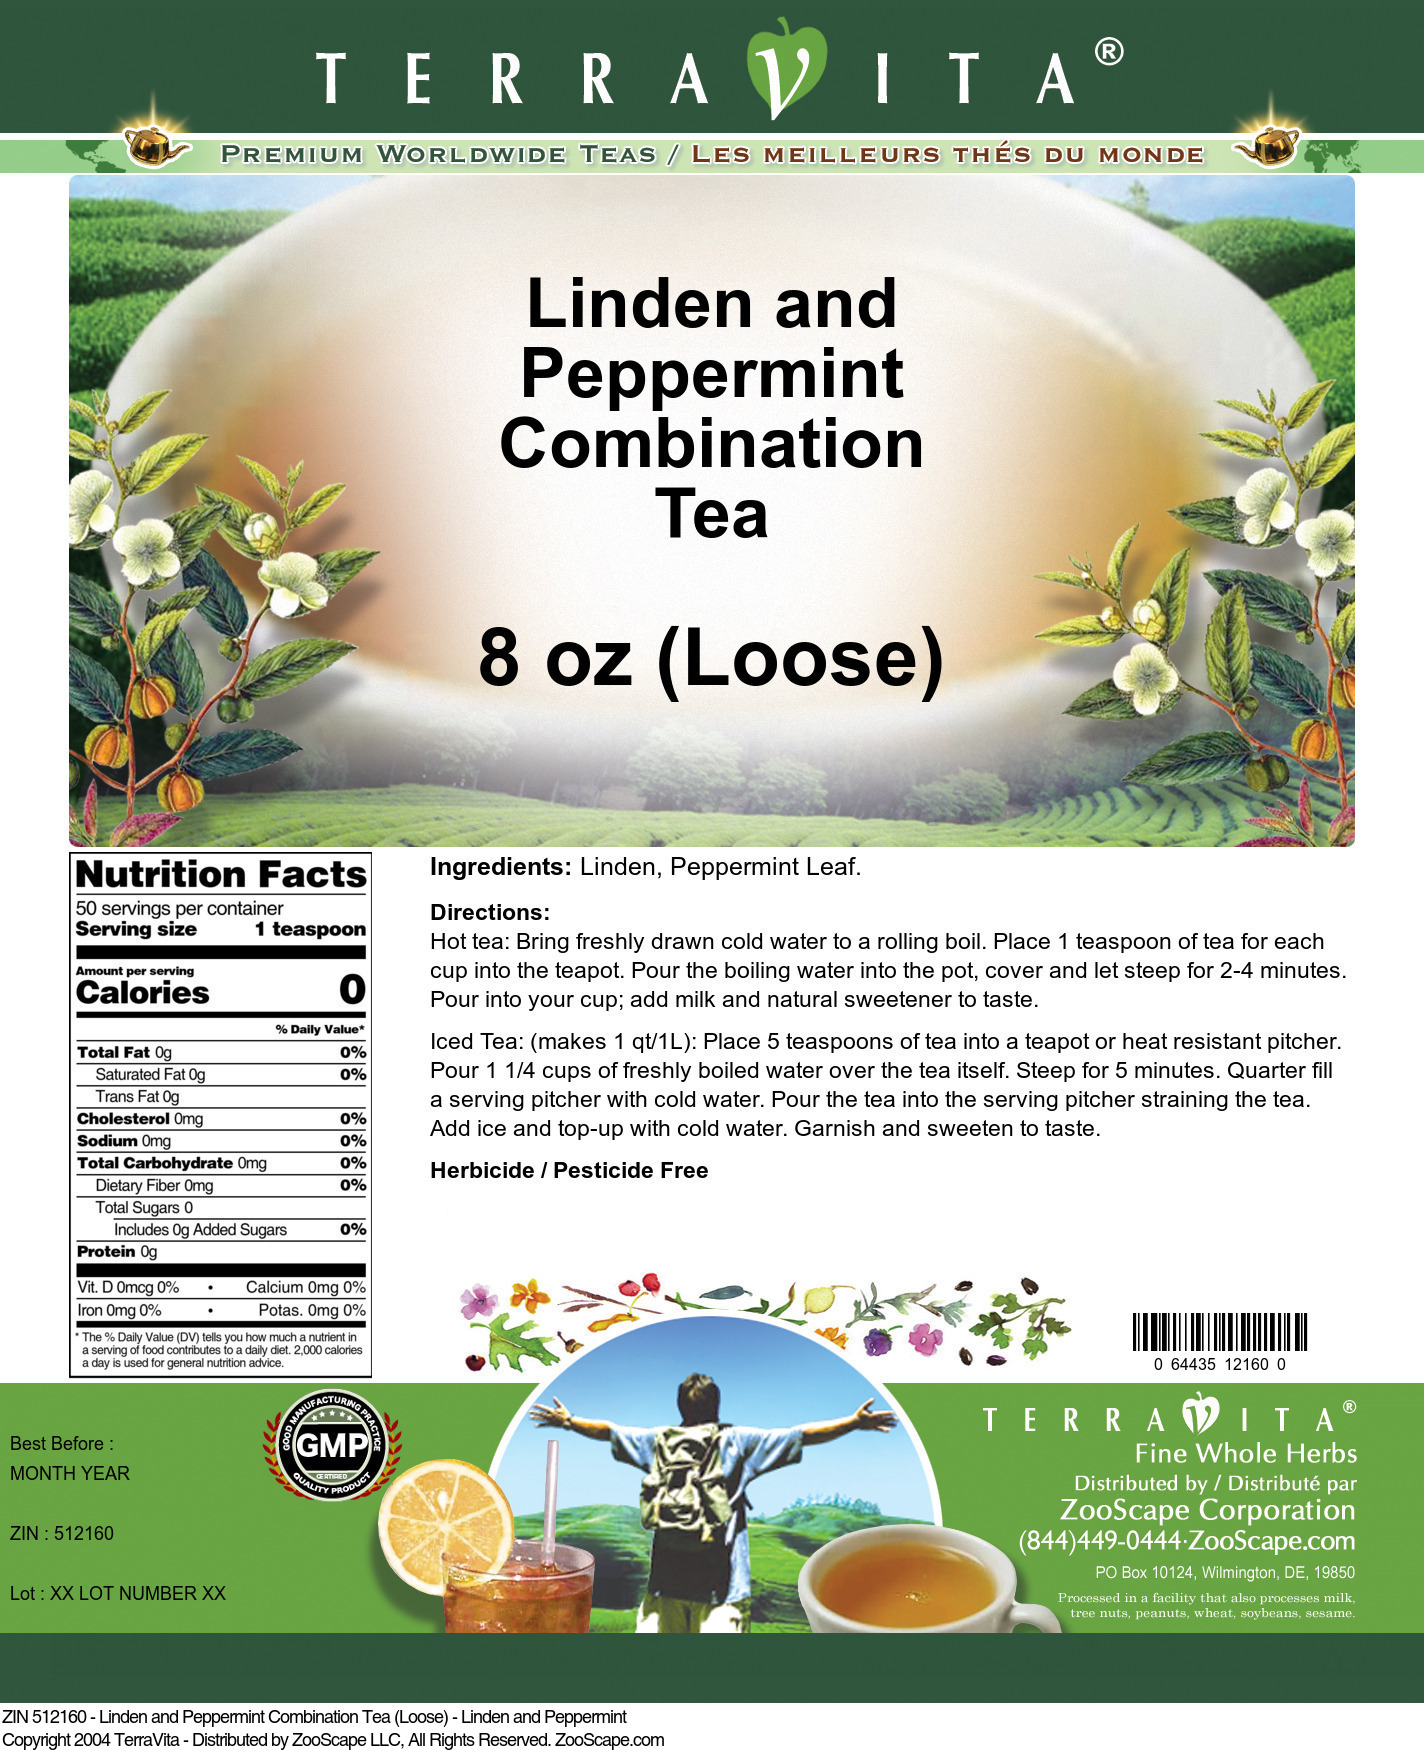 Linden and Peppermint Combination Tea (Loose) - Linden and Peppermint